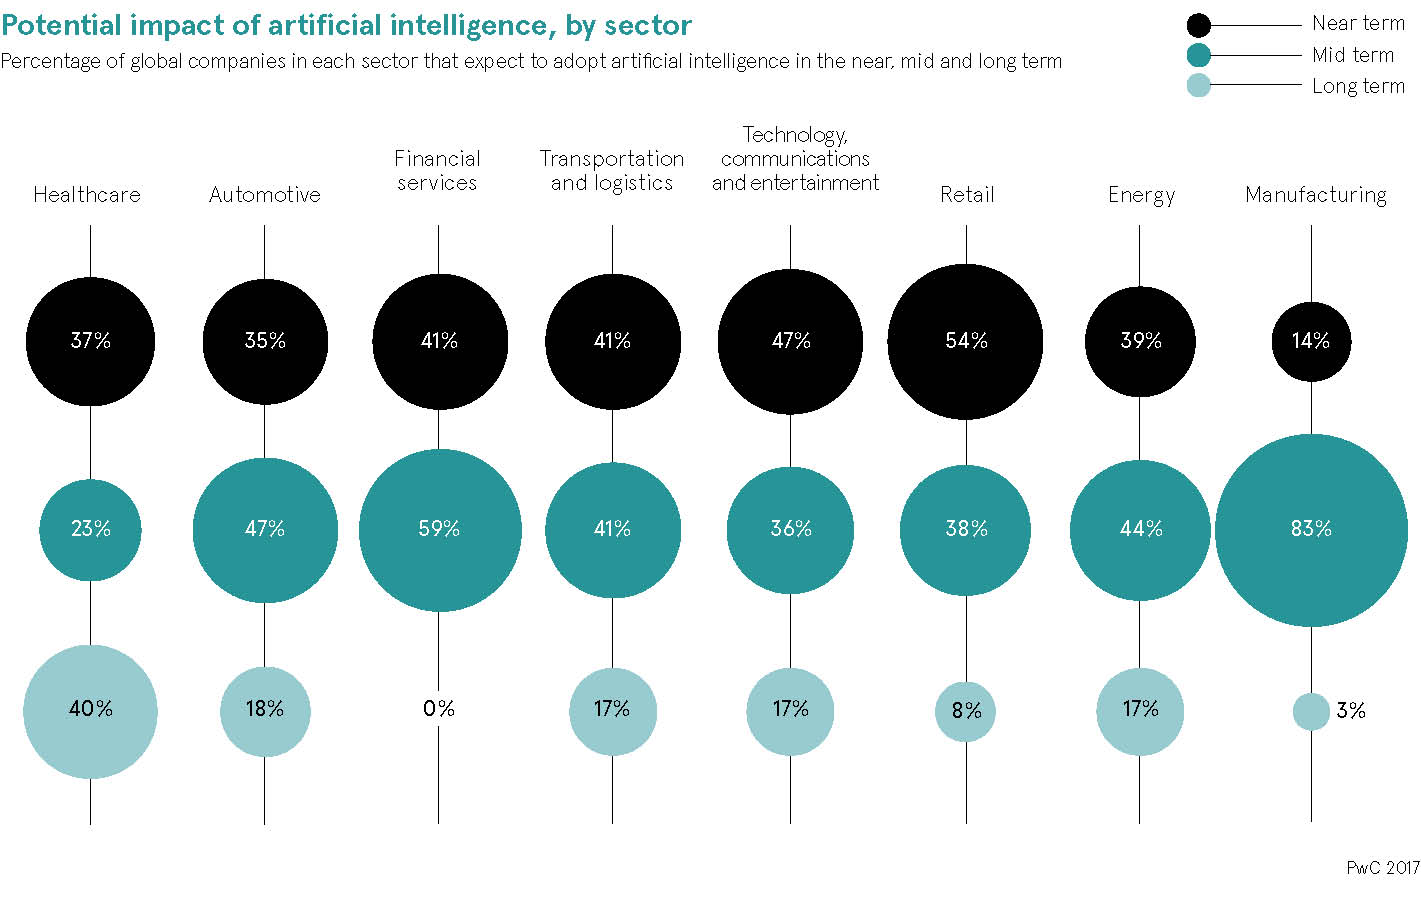 Potential impact of artificial intelligence, by sector chart